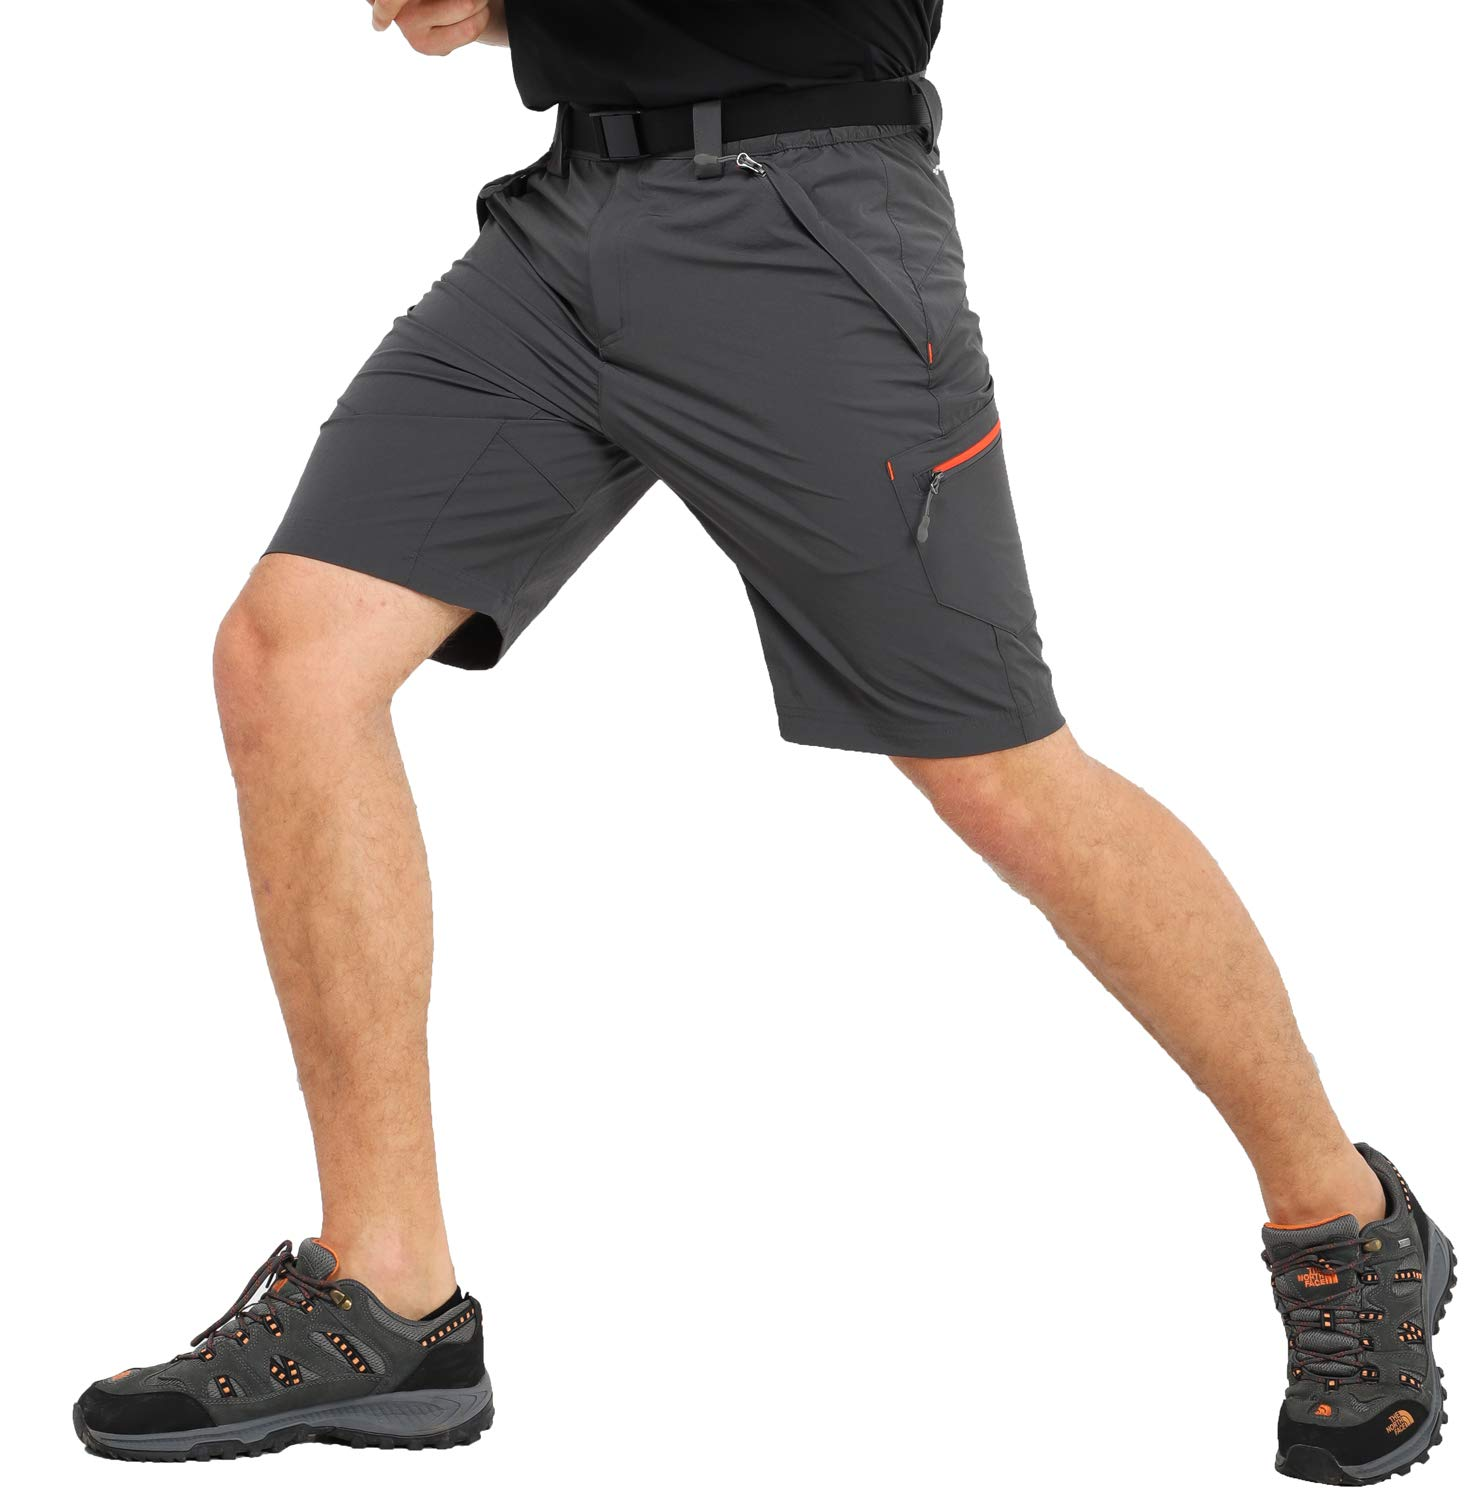 MIER Men's Quick Dry Nylon Cargo Shorts Lightweight Hiking Shorts with Zipper Pockets, Partial Elastic Waist, Water Resistant